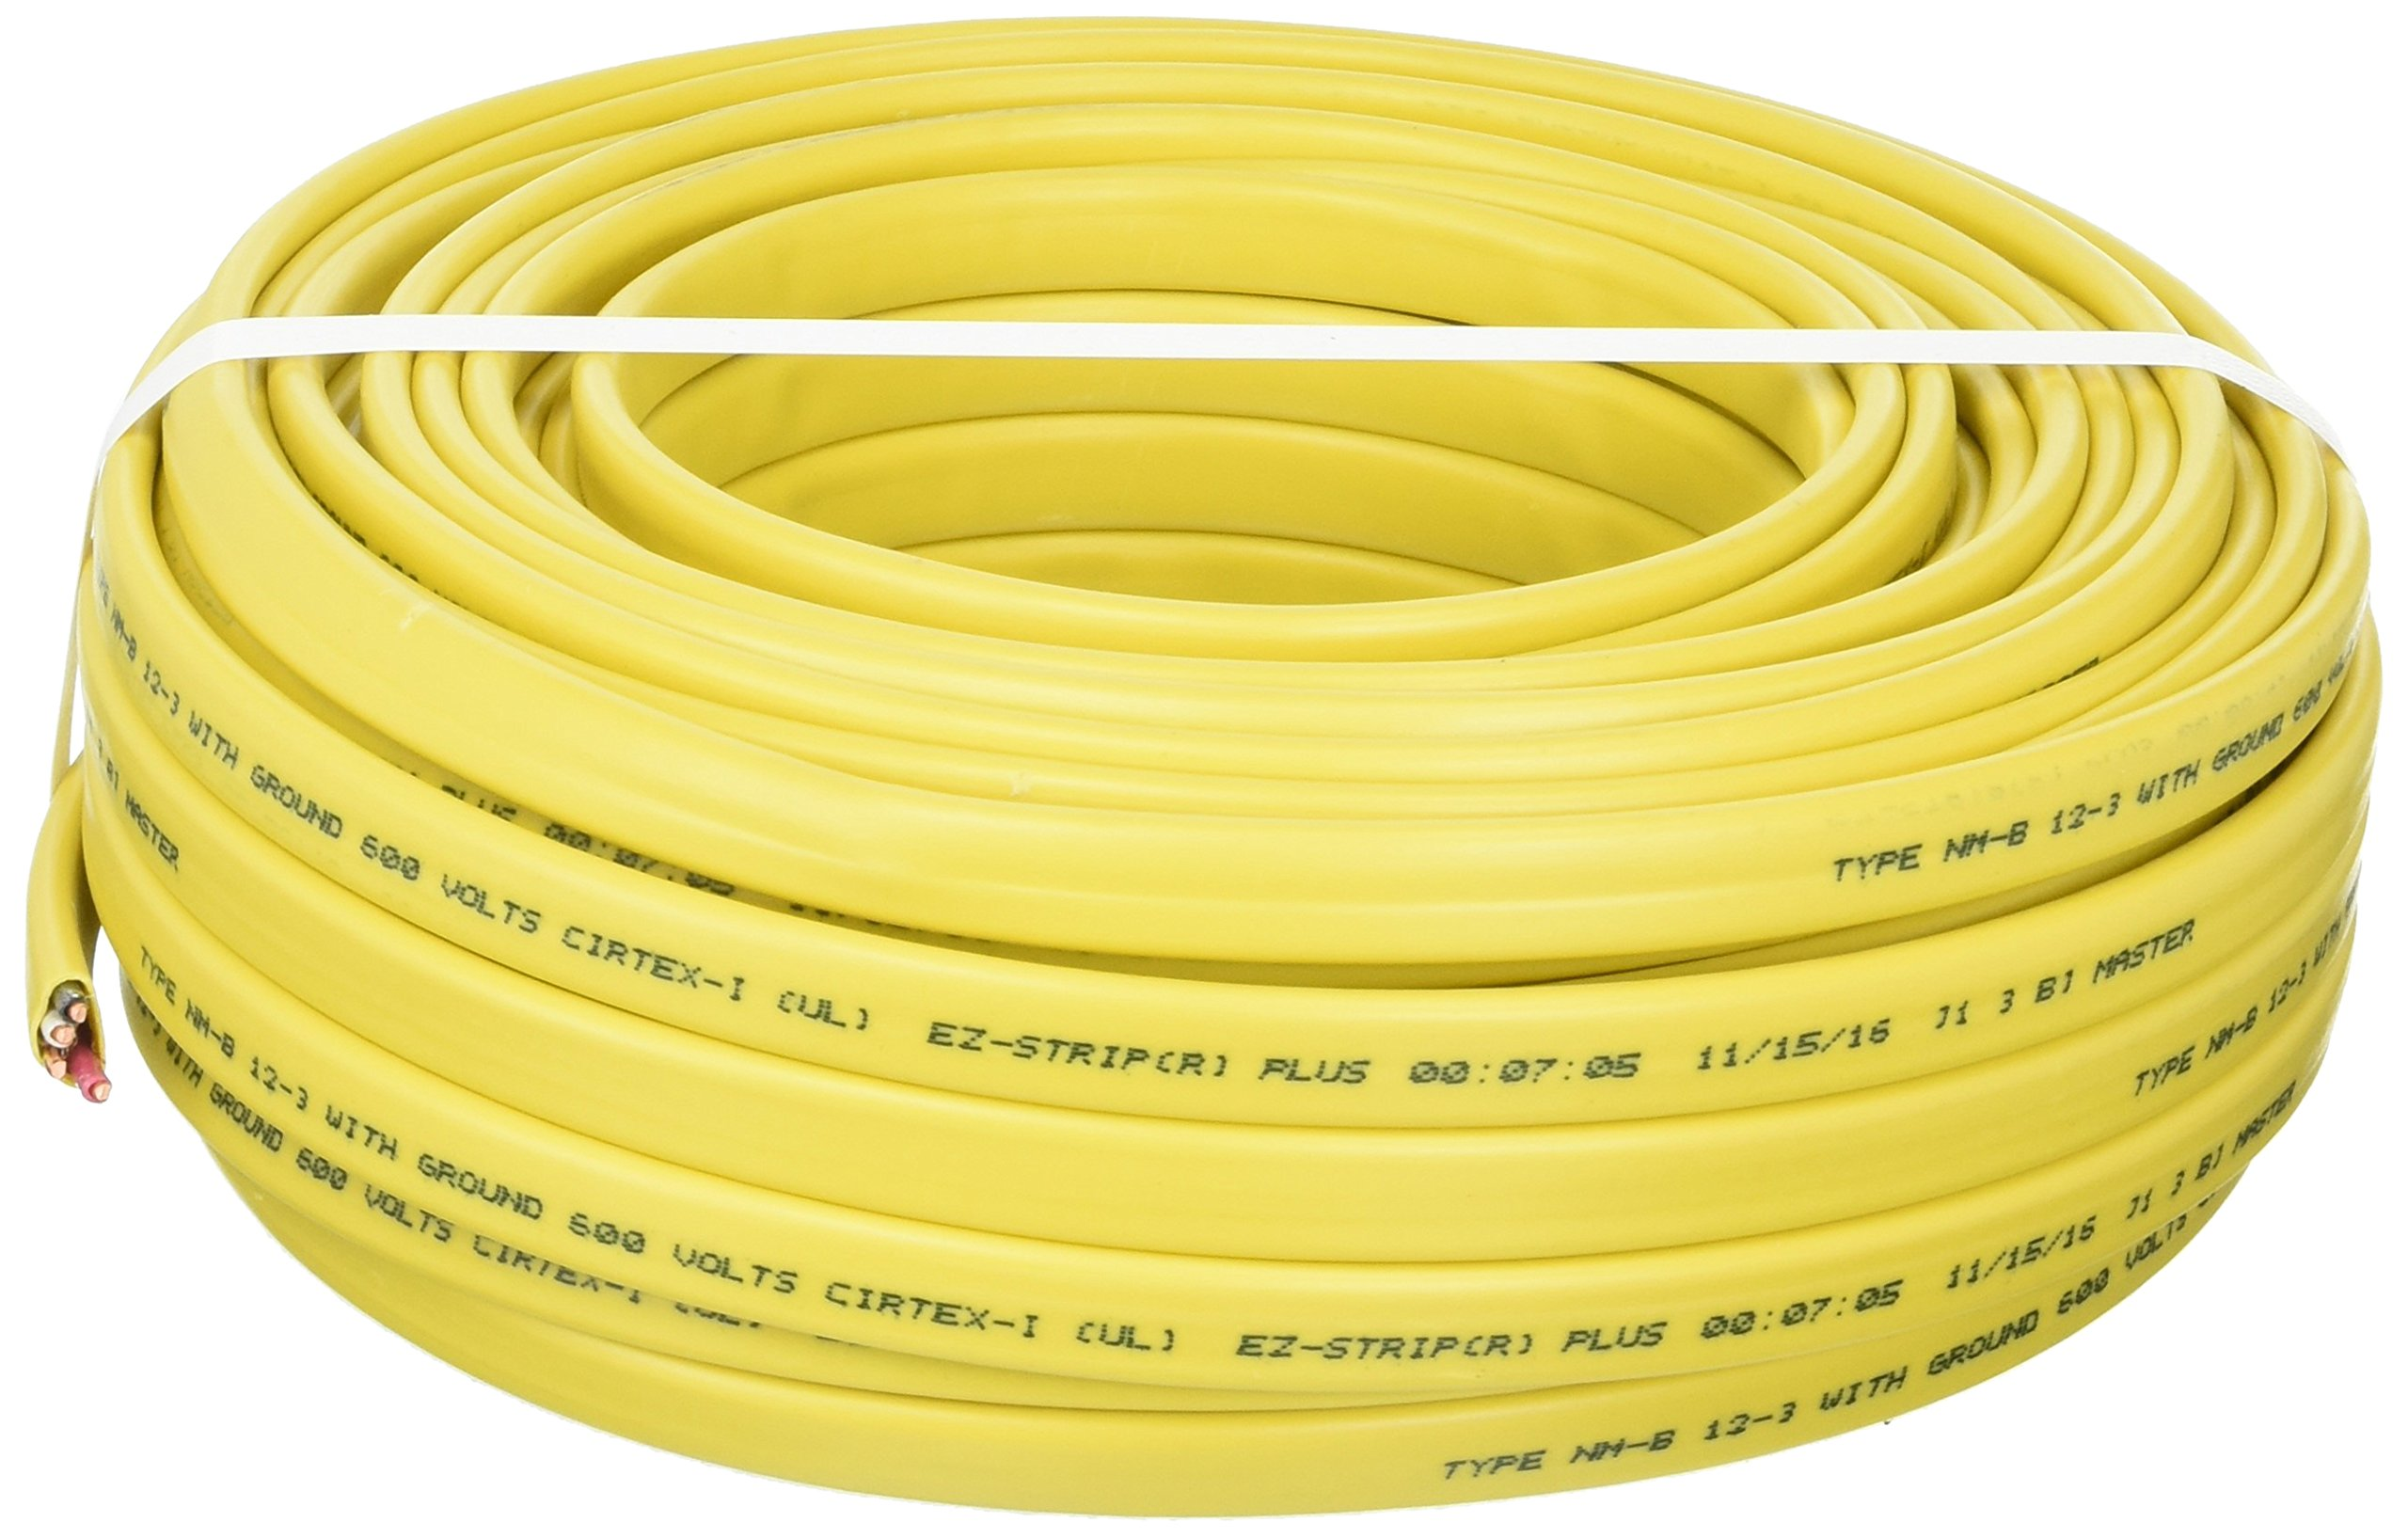 Cerrowire 147-1603CR-2 100-Foot 12/3 NM-B Solid with Ground Wire, Yellow